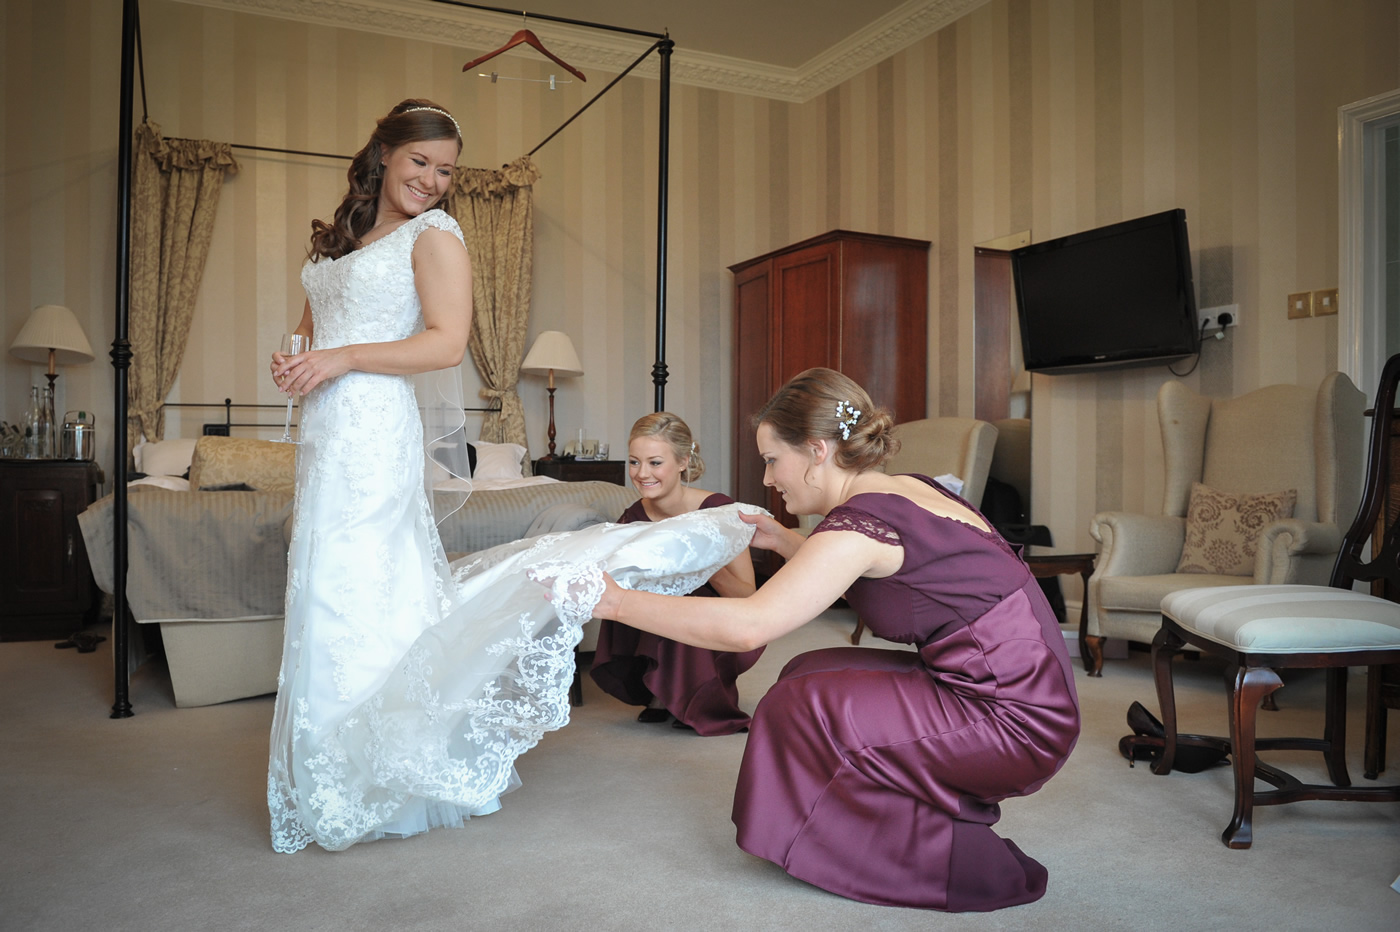 Taplow House Hotel, Maidenhead, Berkshire Wedding - Bride & Bridemaids In Room - Bridal Hair & Makeup